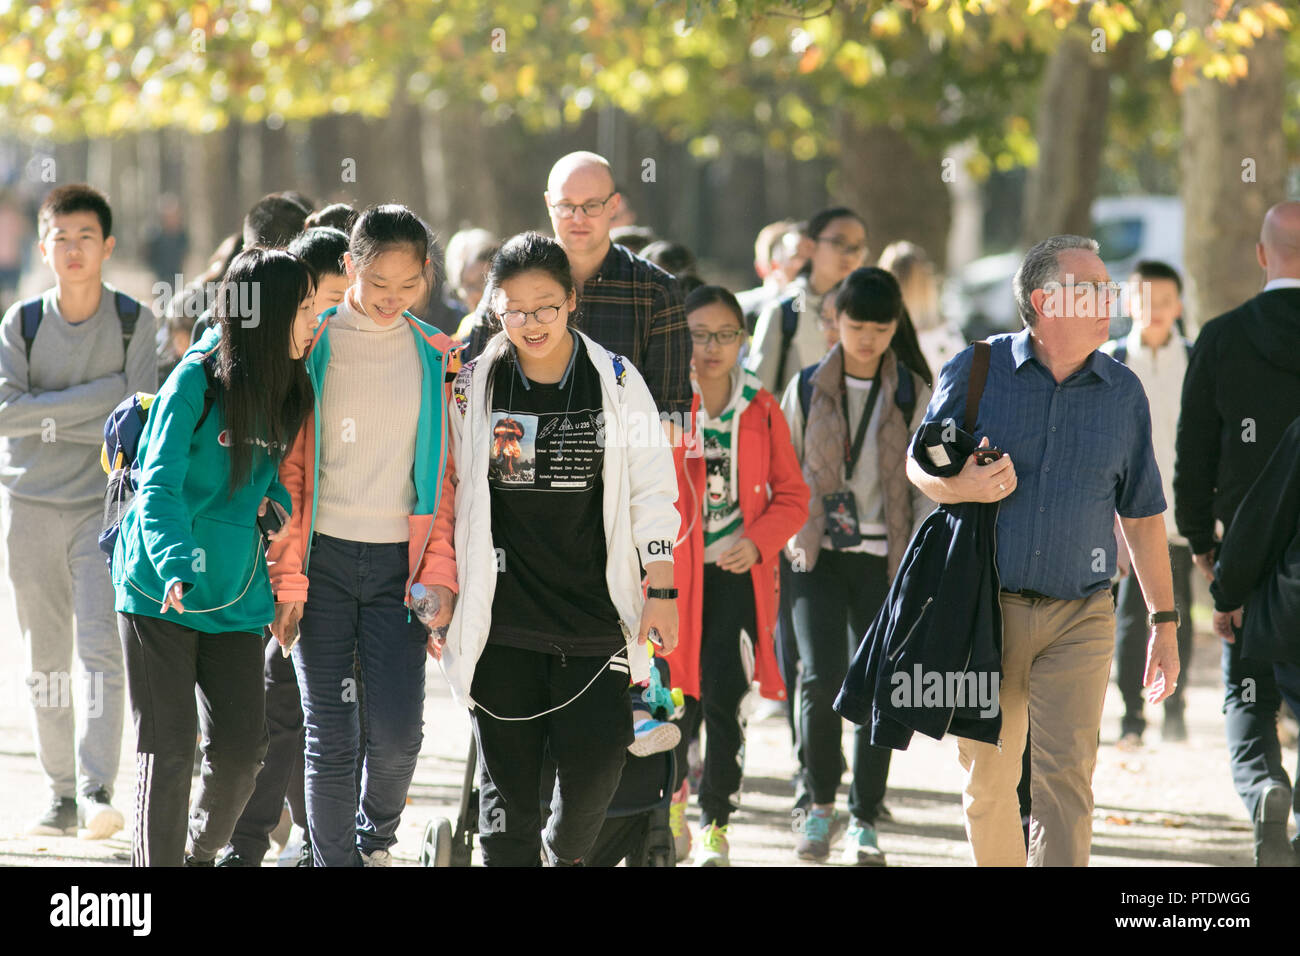 London UK. 9th Ocrober 2018. People strolling in the afternoon  sunshine in Saint James's Park covered in fallen leaves on a warm autumn day as October is forecast to be the hottest month in Seven years as the Indian summer returns Credit: amer ghazzal/Alamy Live News - Stock Image